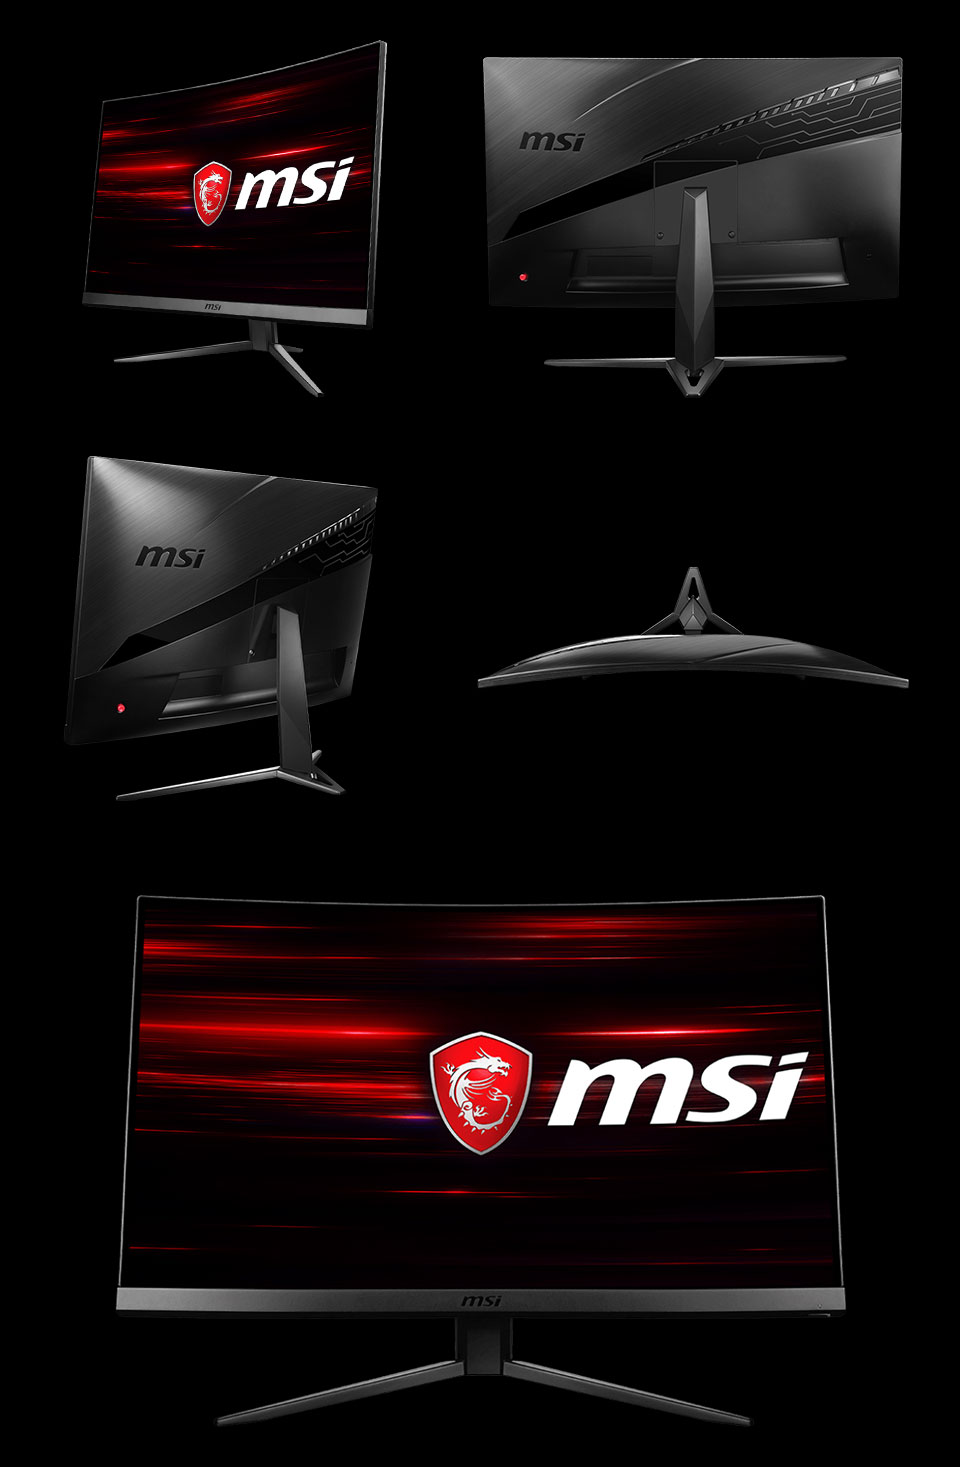 MSI MAG241C FHD 144hz Freesync Curved 24in Monitor